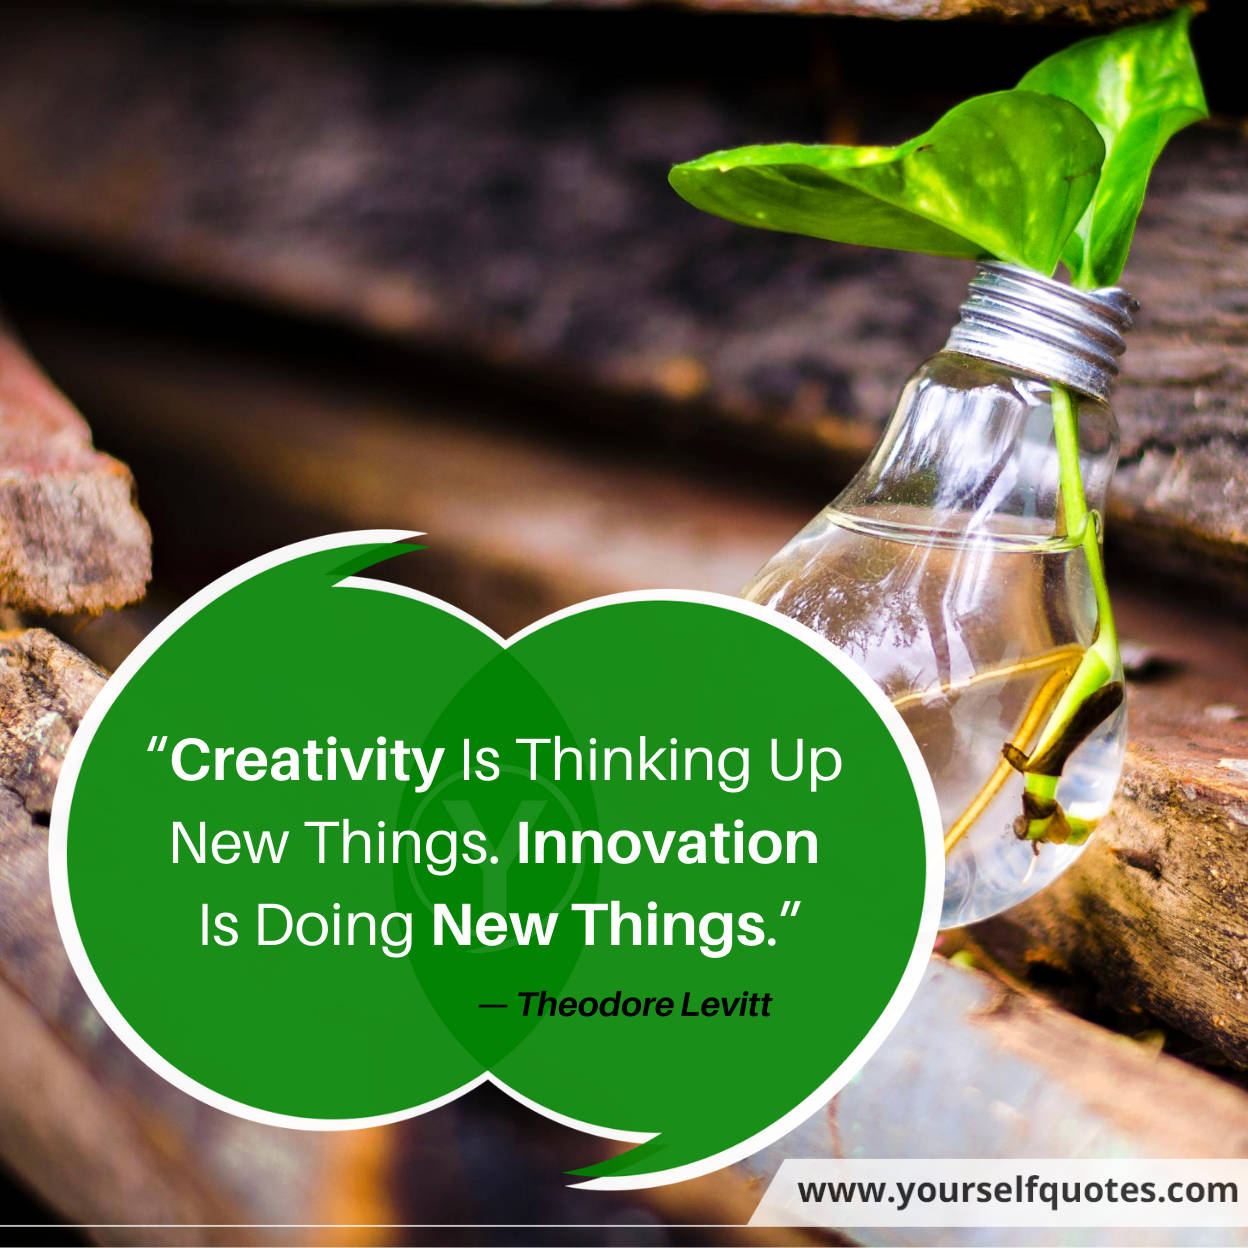 Quotes About Creativity Images